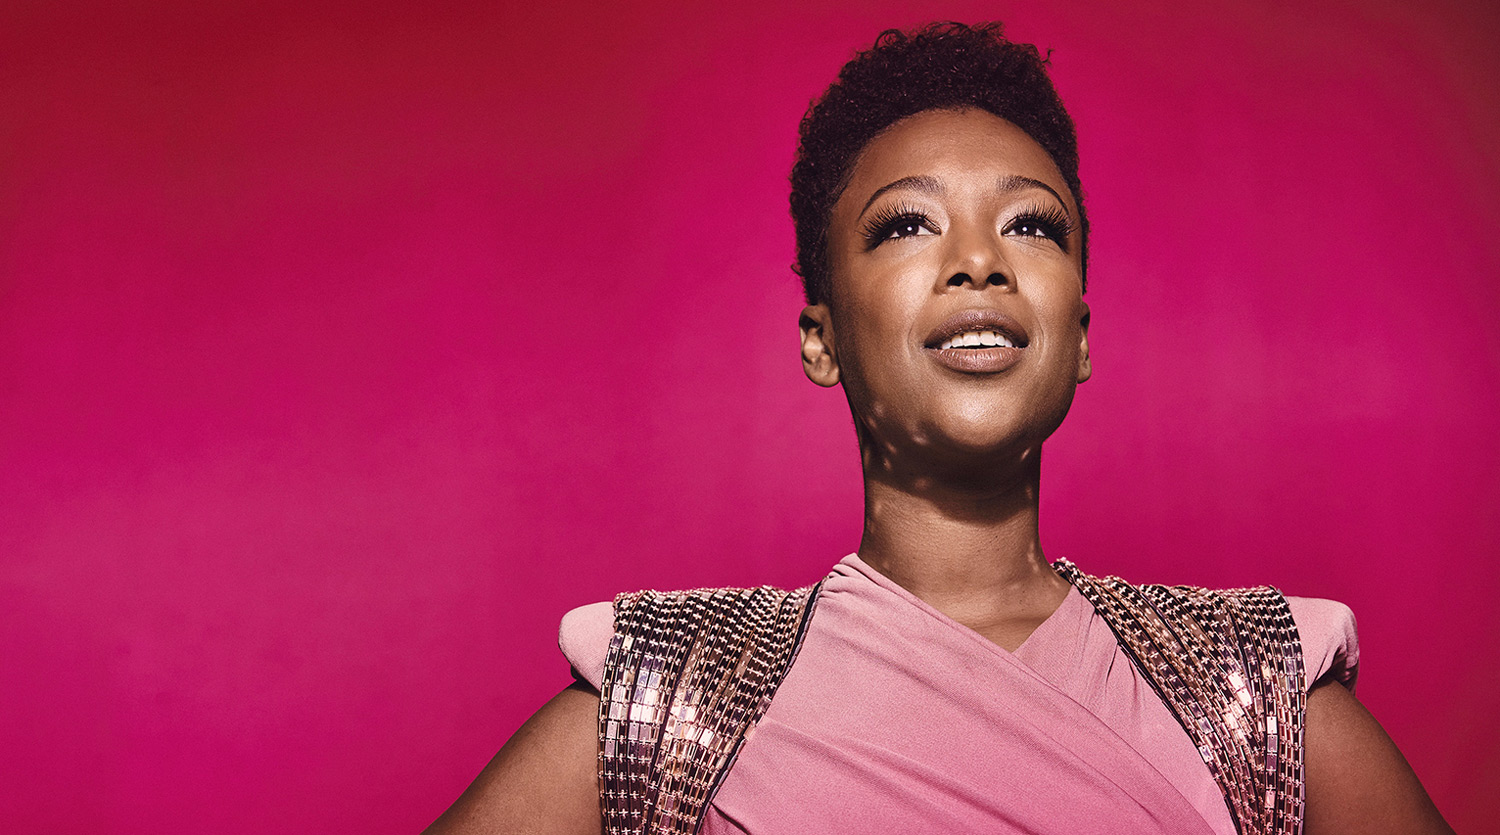 Samira Wiley Jokes She's A Housewife After Getting Married